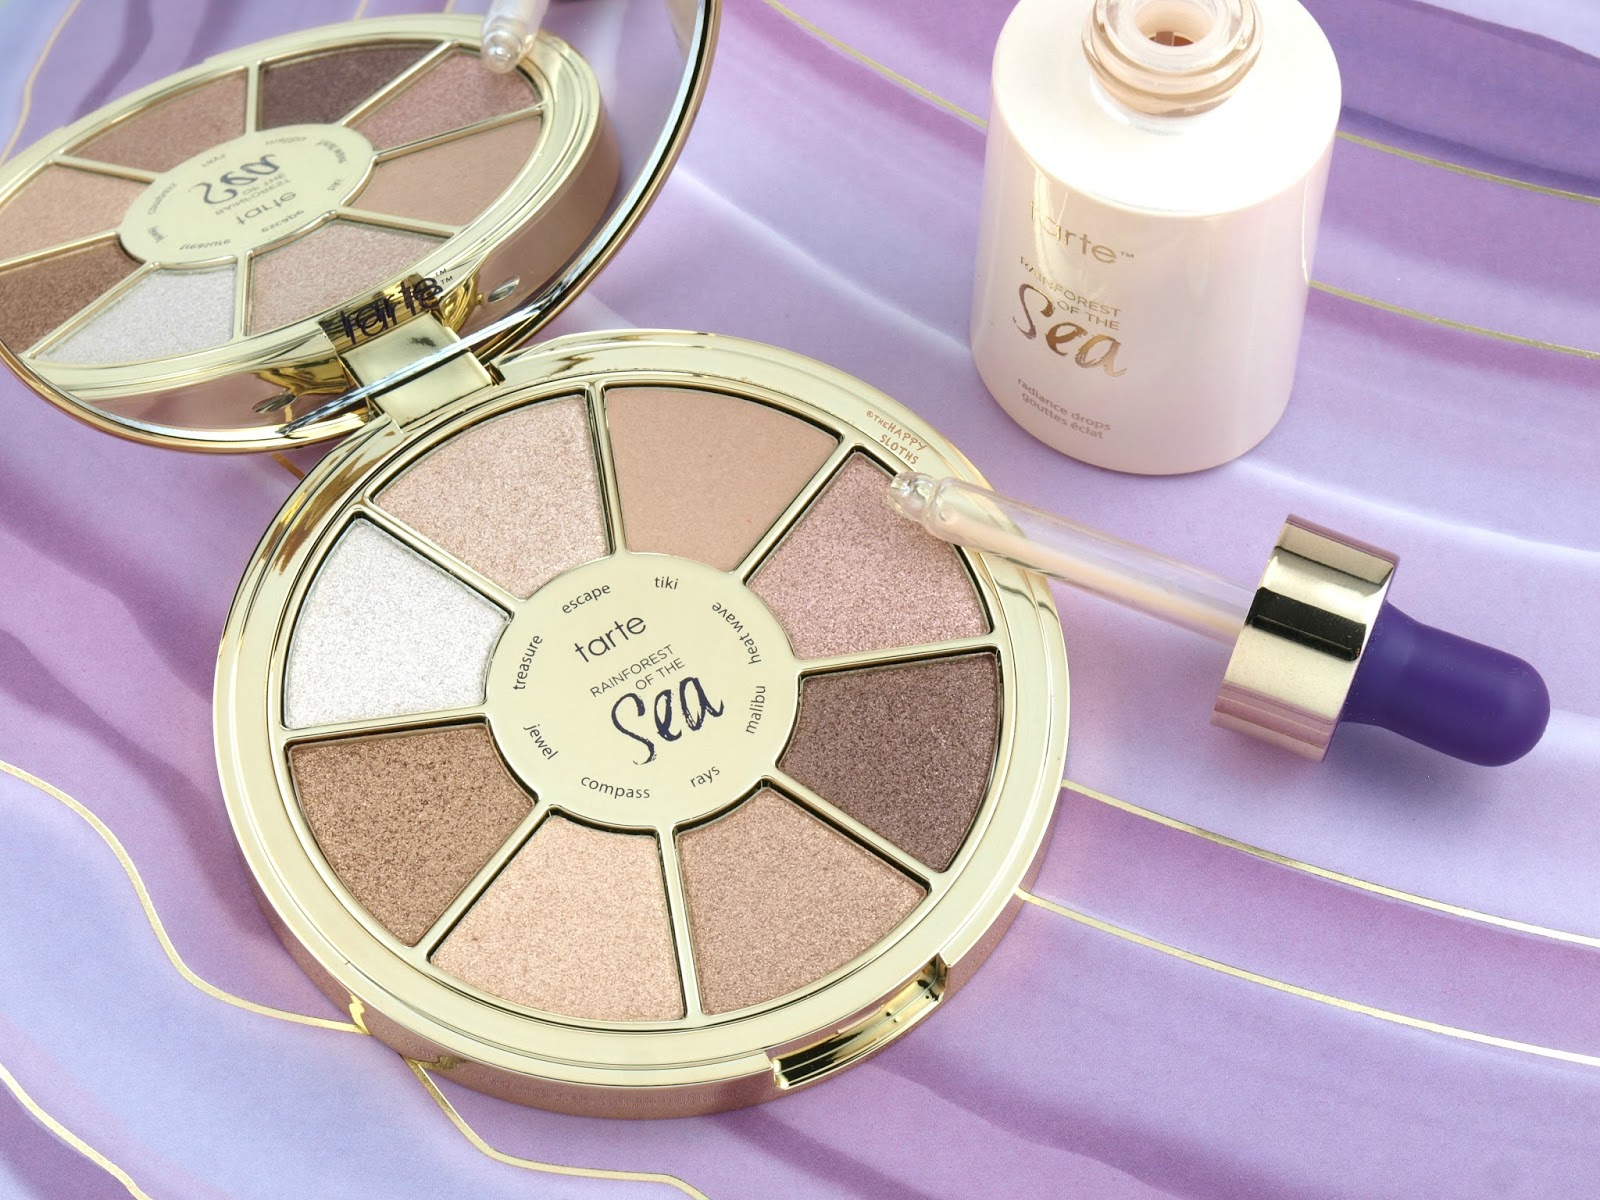 Tarte Rainforest of the Sea Volume III Eyeshadow Palette & Radiance Drops: Review and Swatches